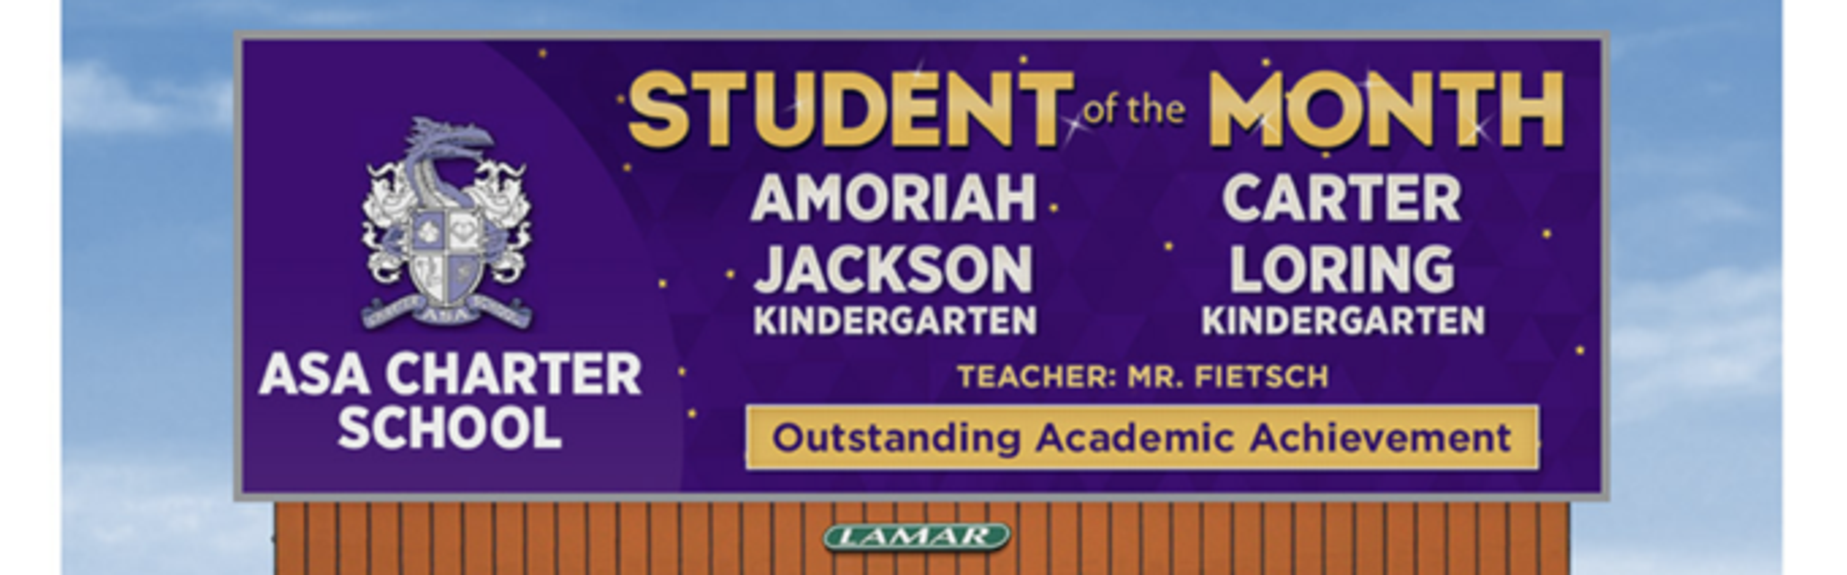 kindergarten student of the month